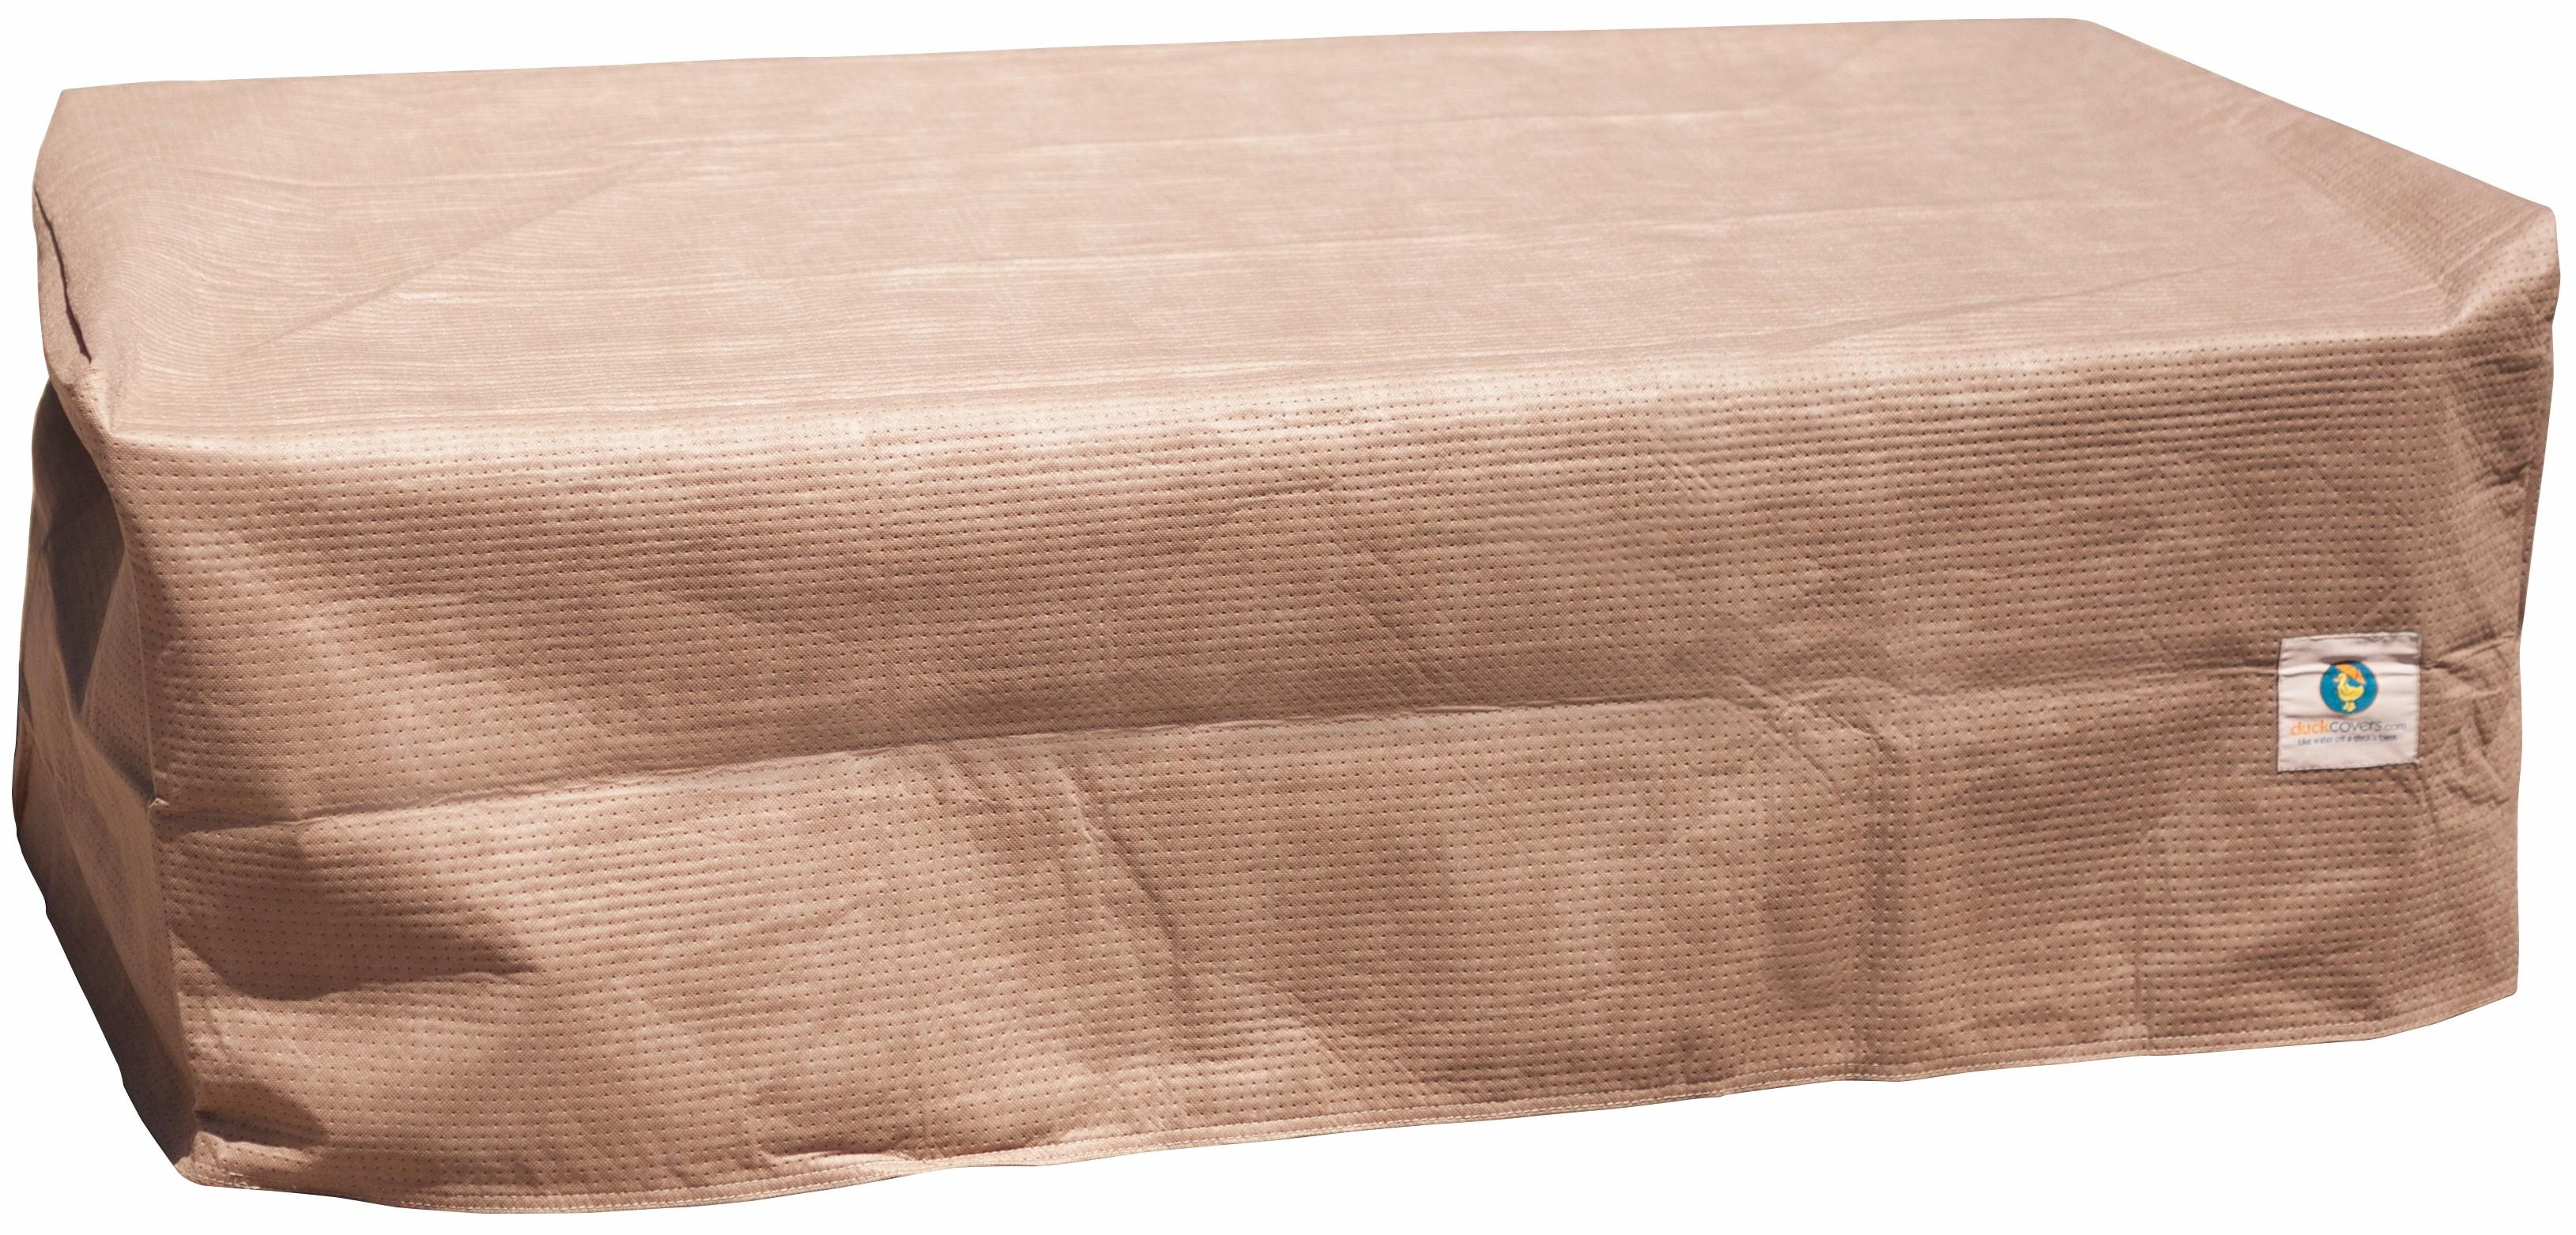 Whats included ottoman or side table cover